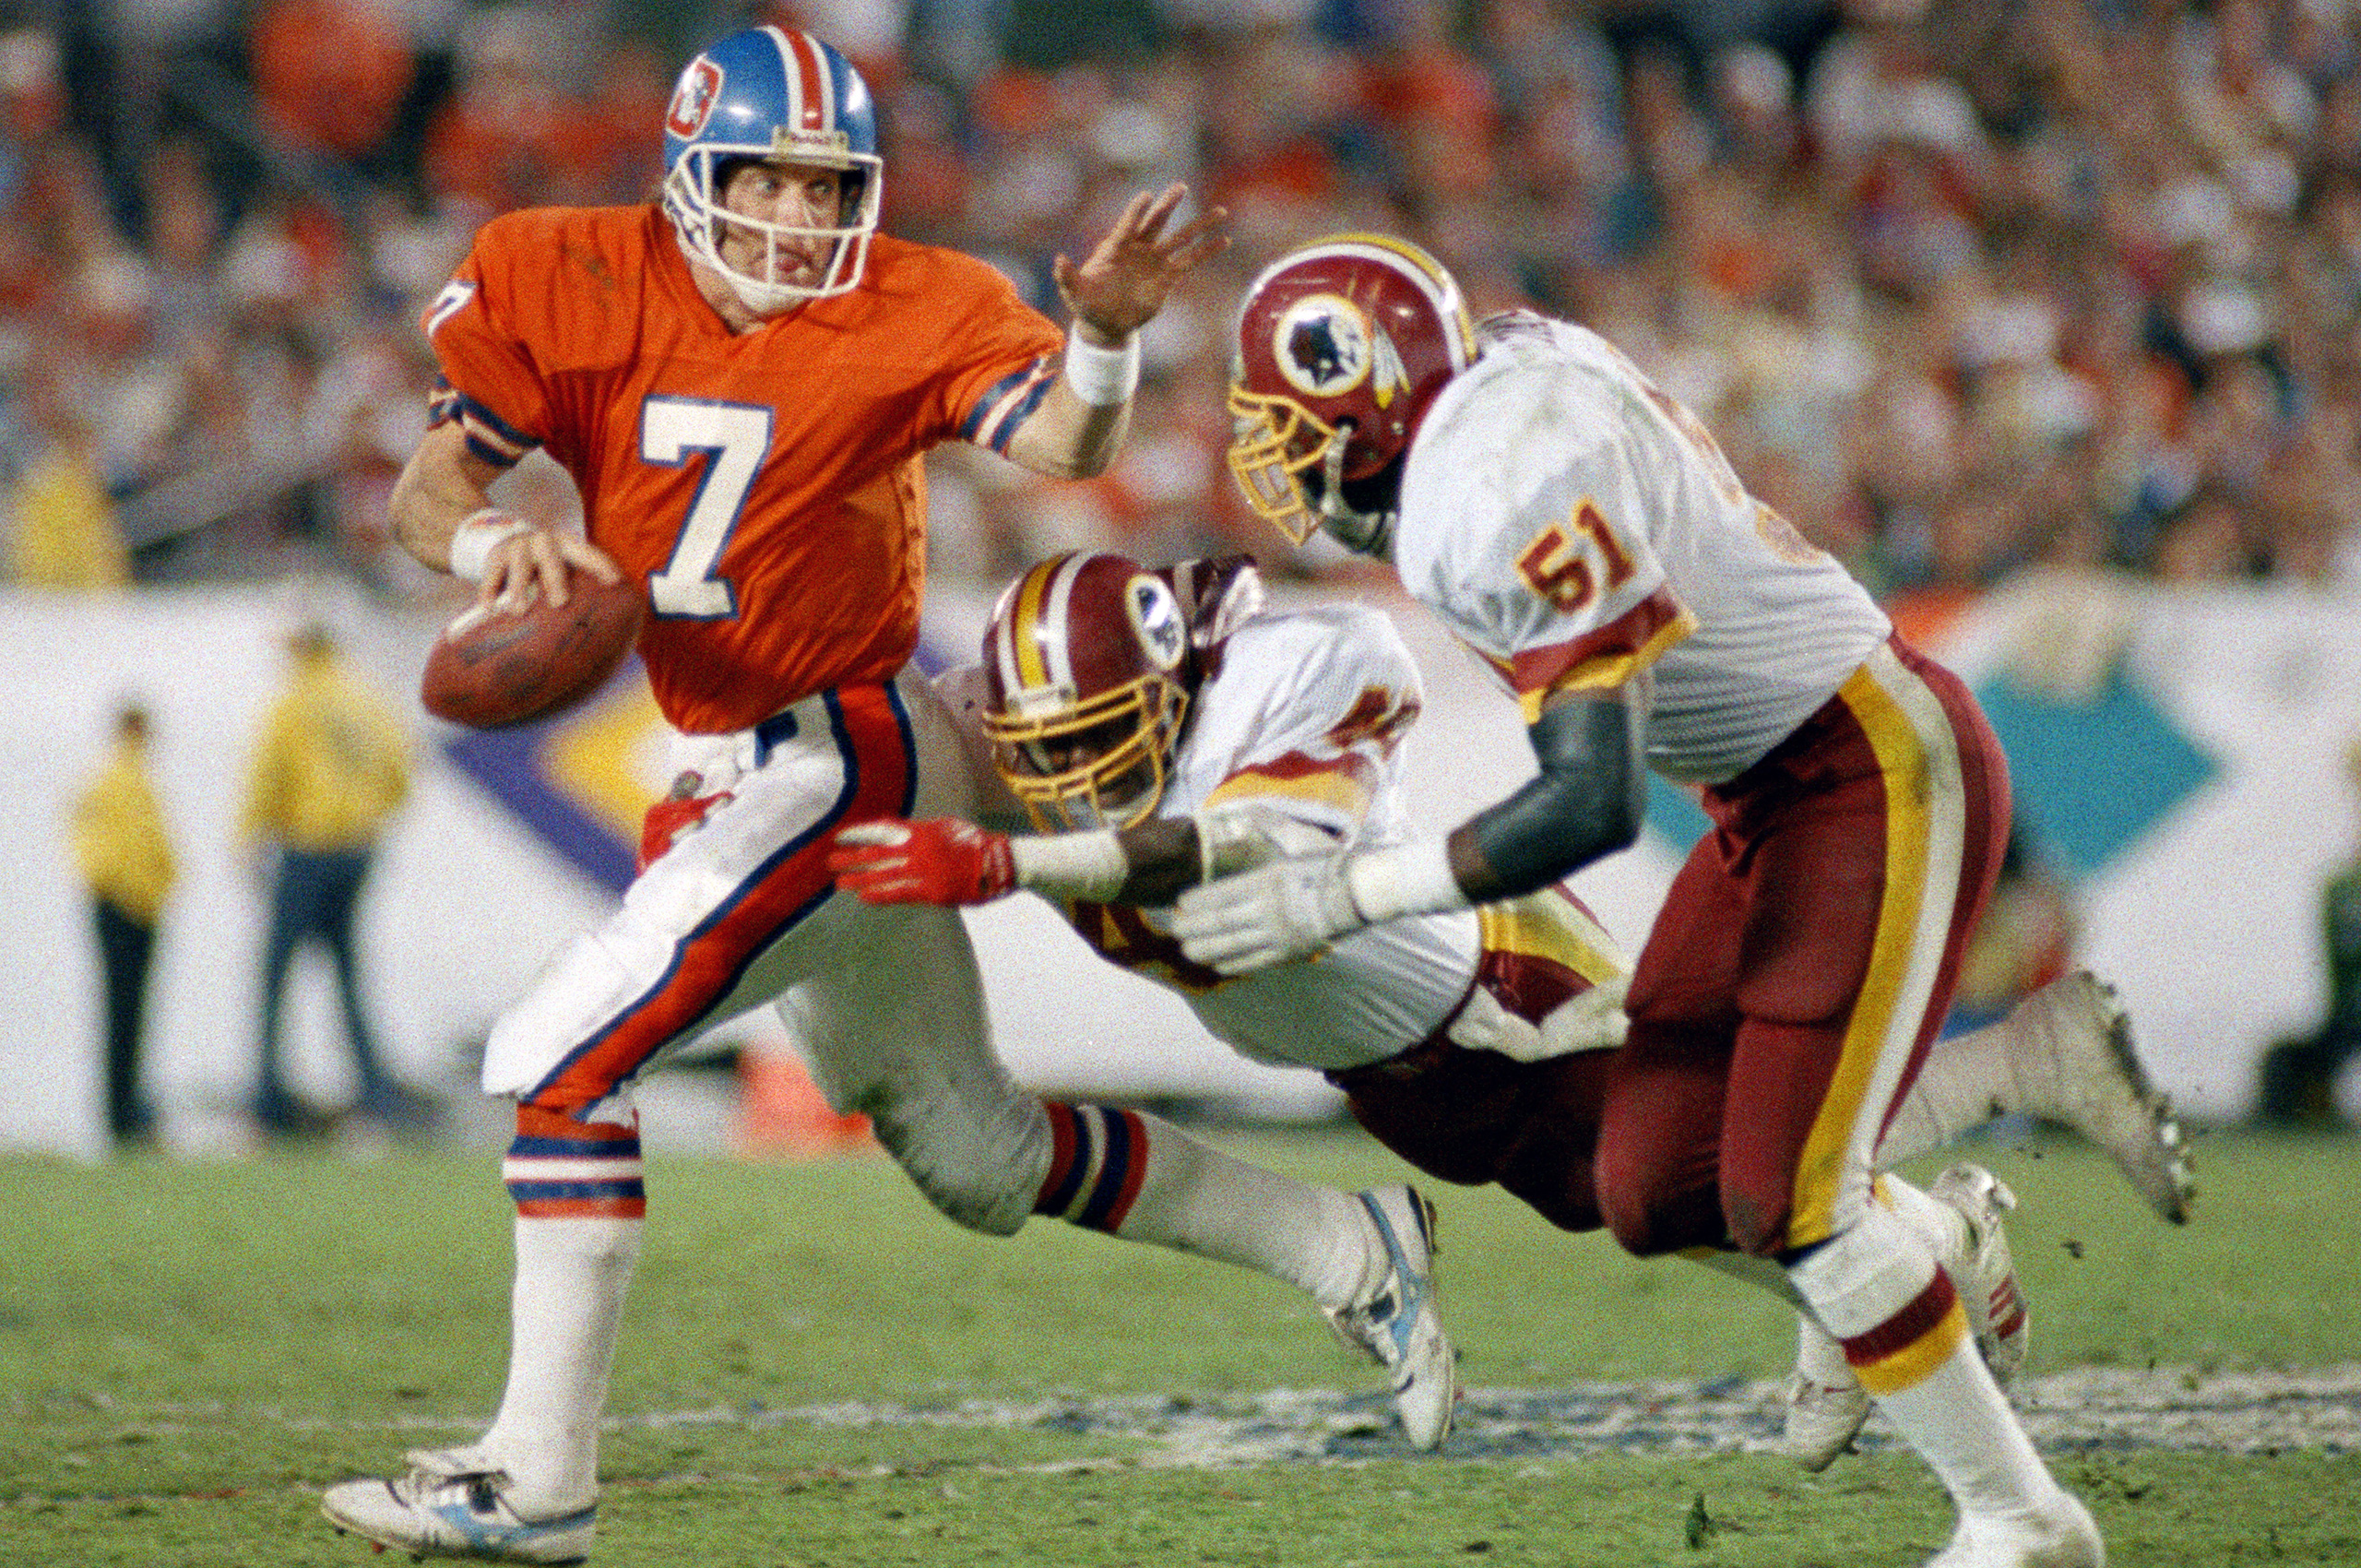 John Elway in Super Bowl XXII